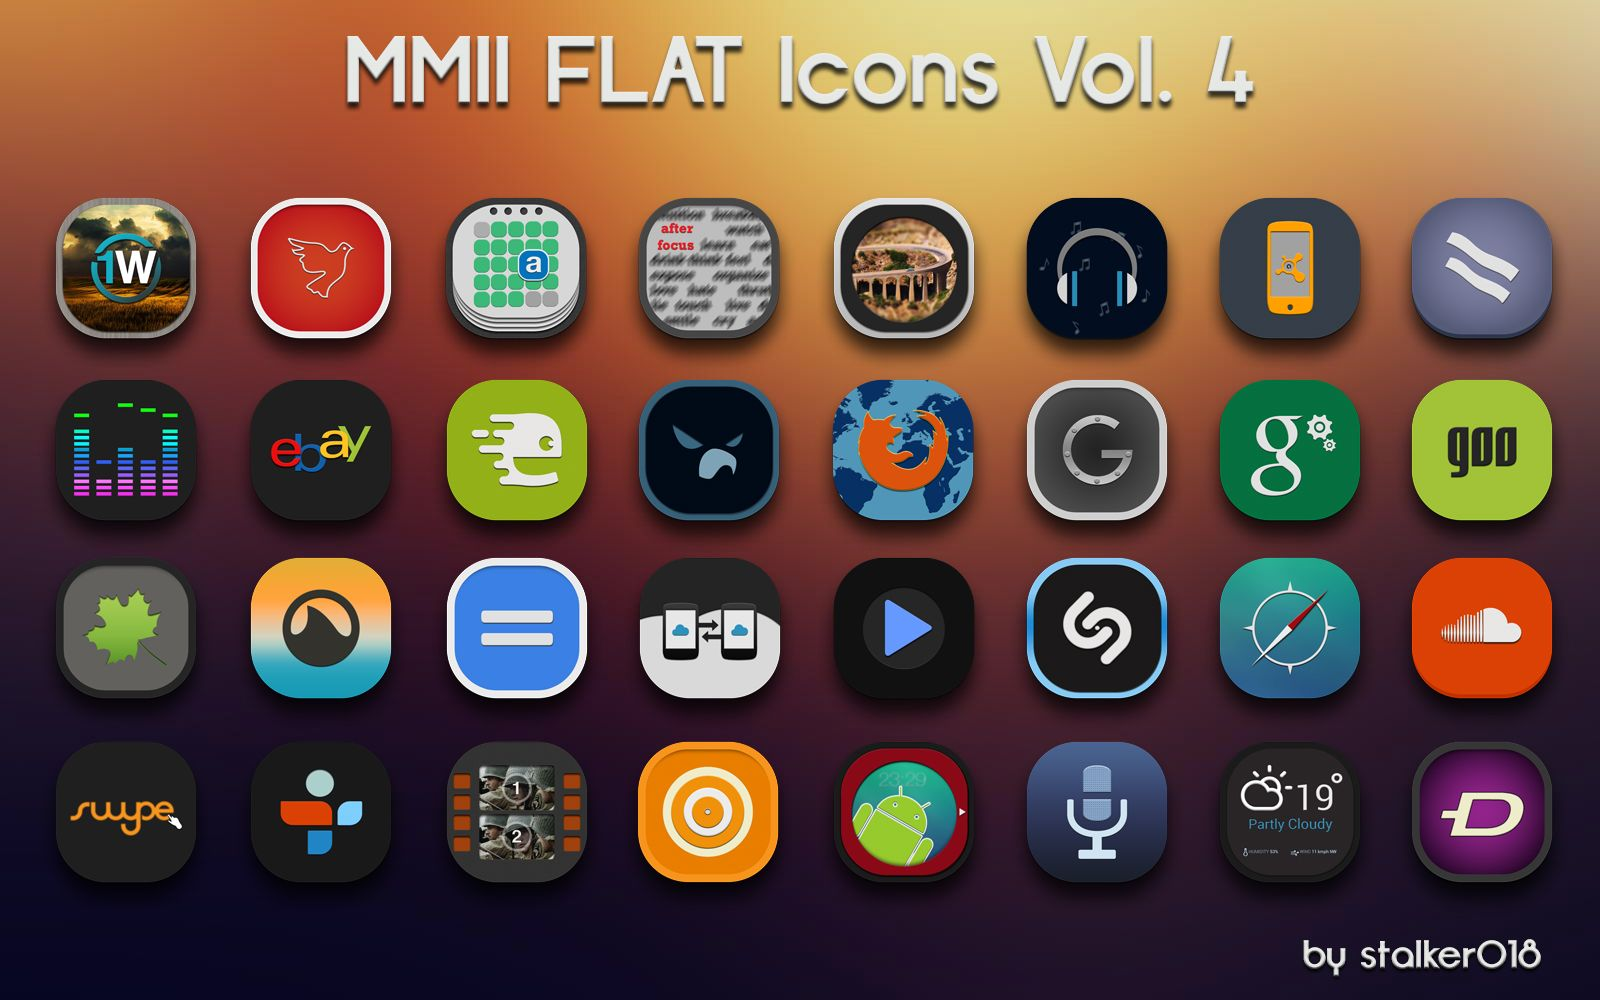 MMII FLAT Icons Vol.4 by on